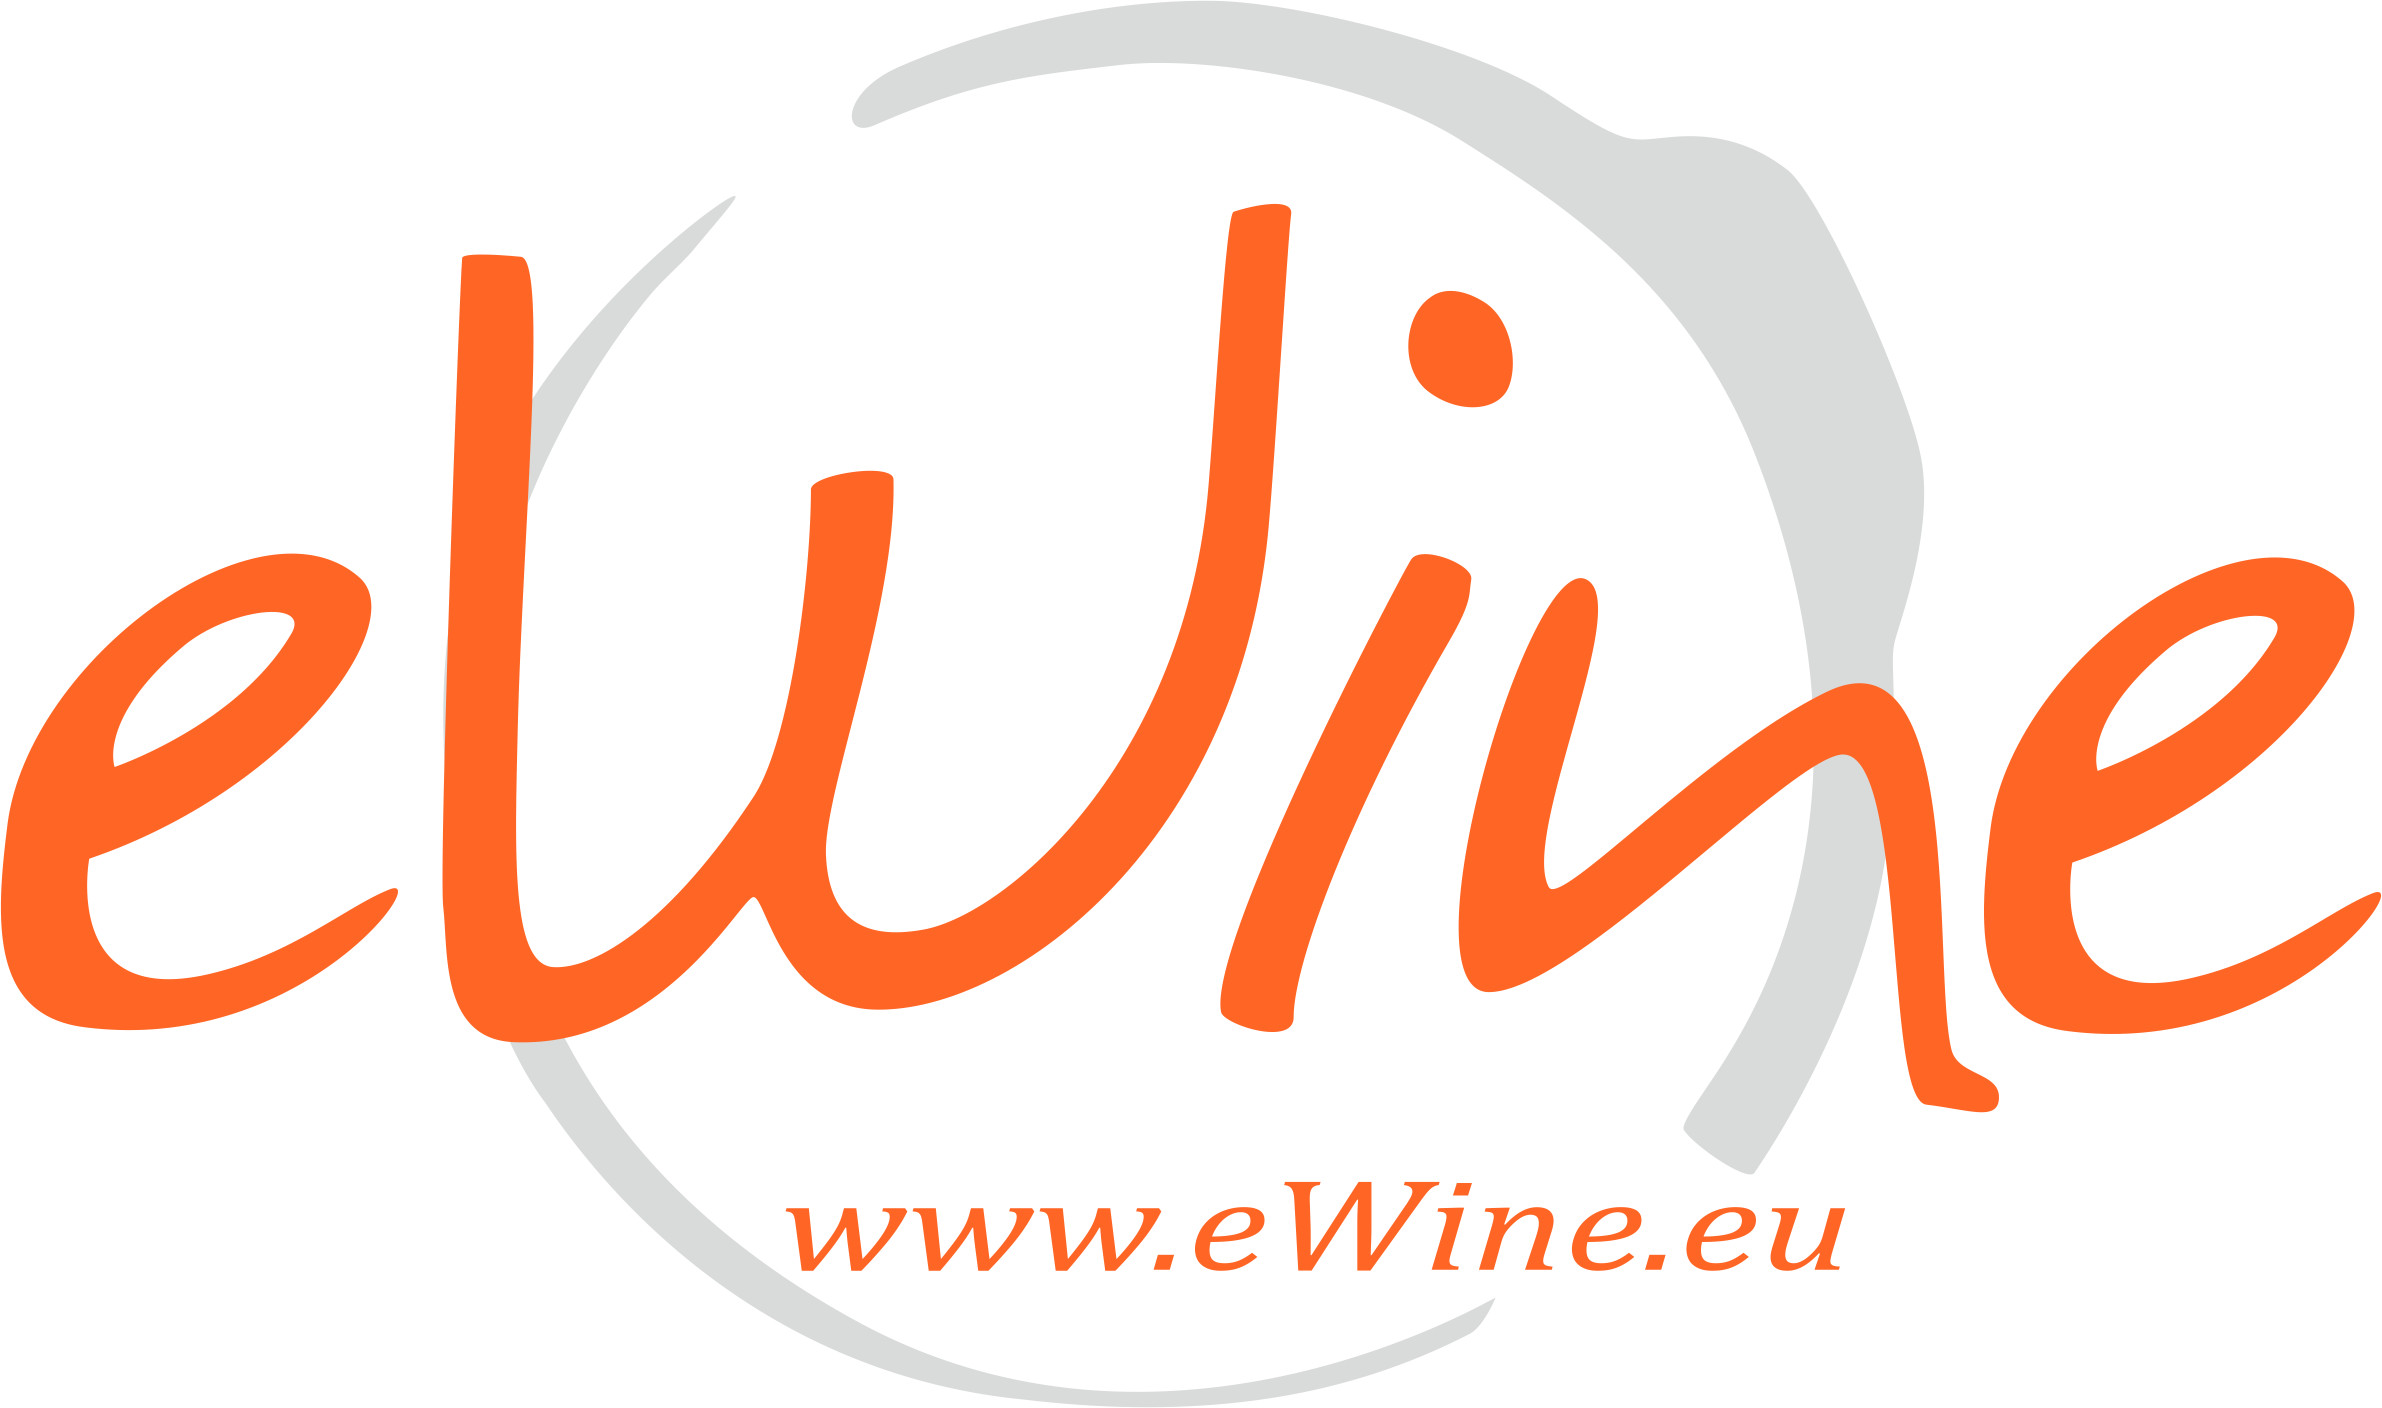 eWine-Your partner for good wines!